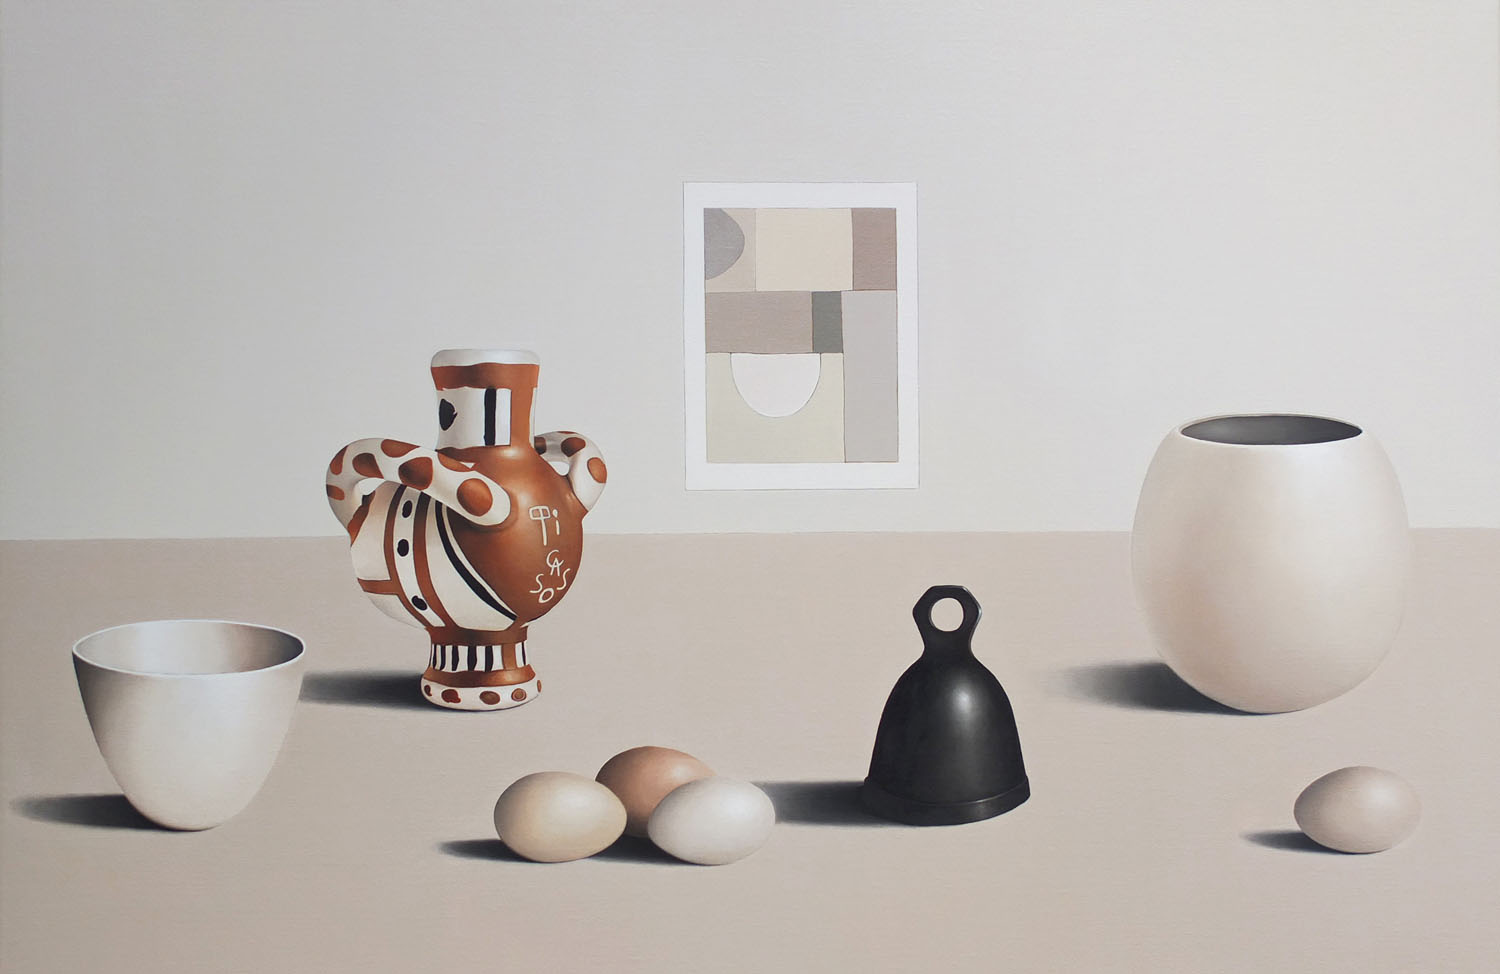 Liam Belton_2013_Roman Bell with Picasso Ceramic_oil on canvas.jpg